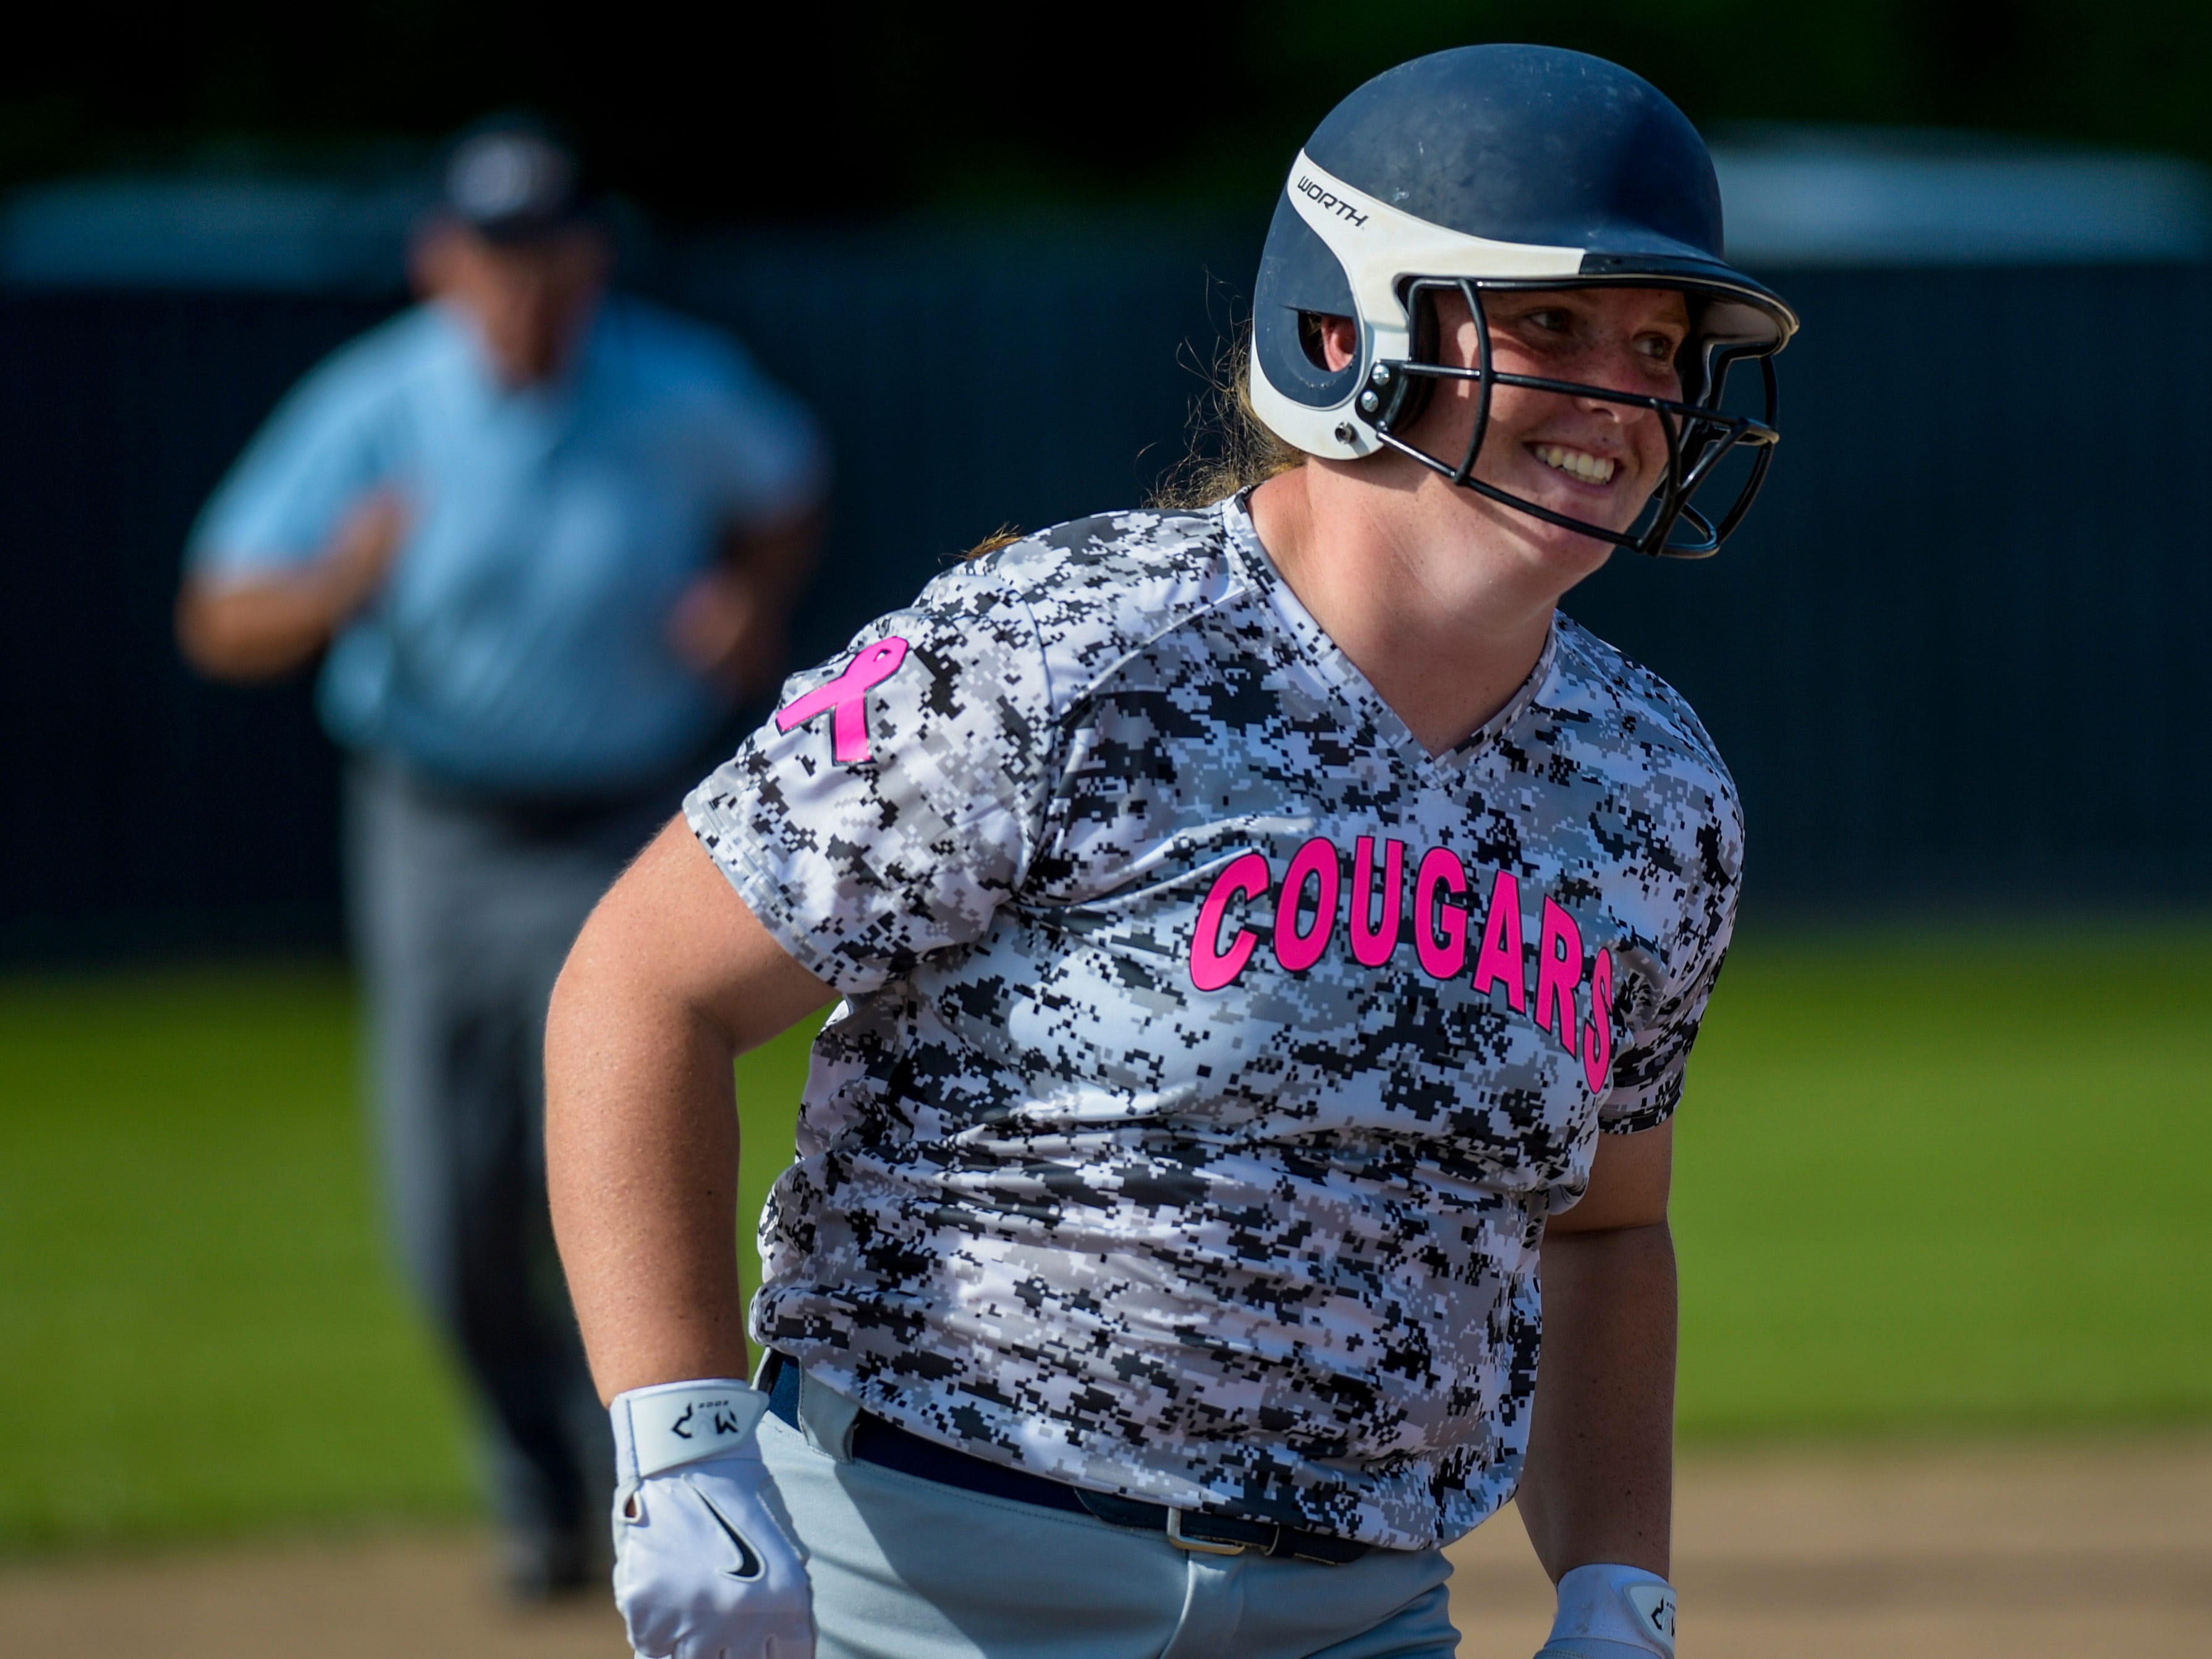 St. Thomas More catcher Bailey Hemphill (16) is hoping to carry the Lady Cougars to another state tournament trip.